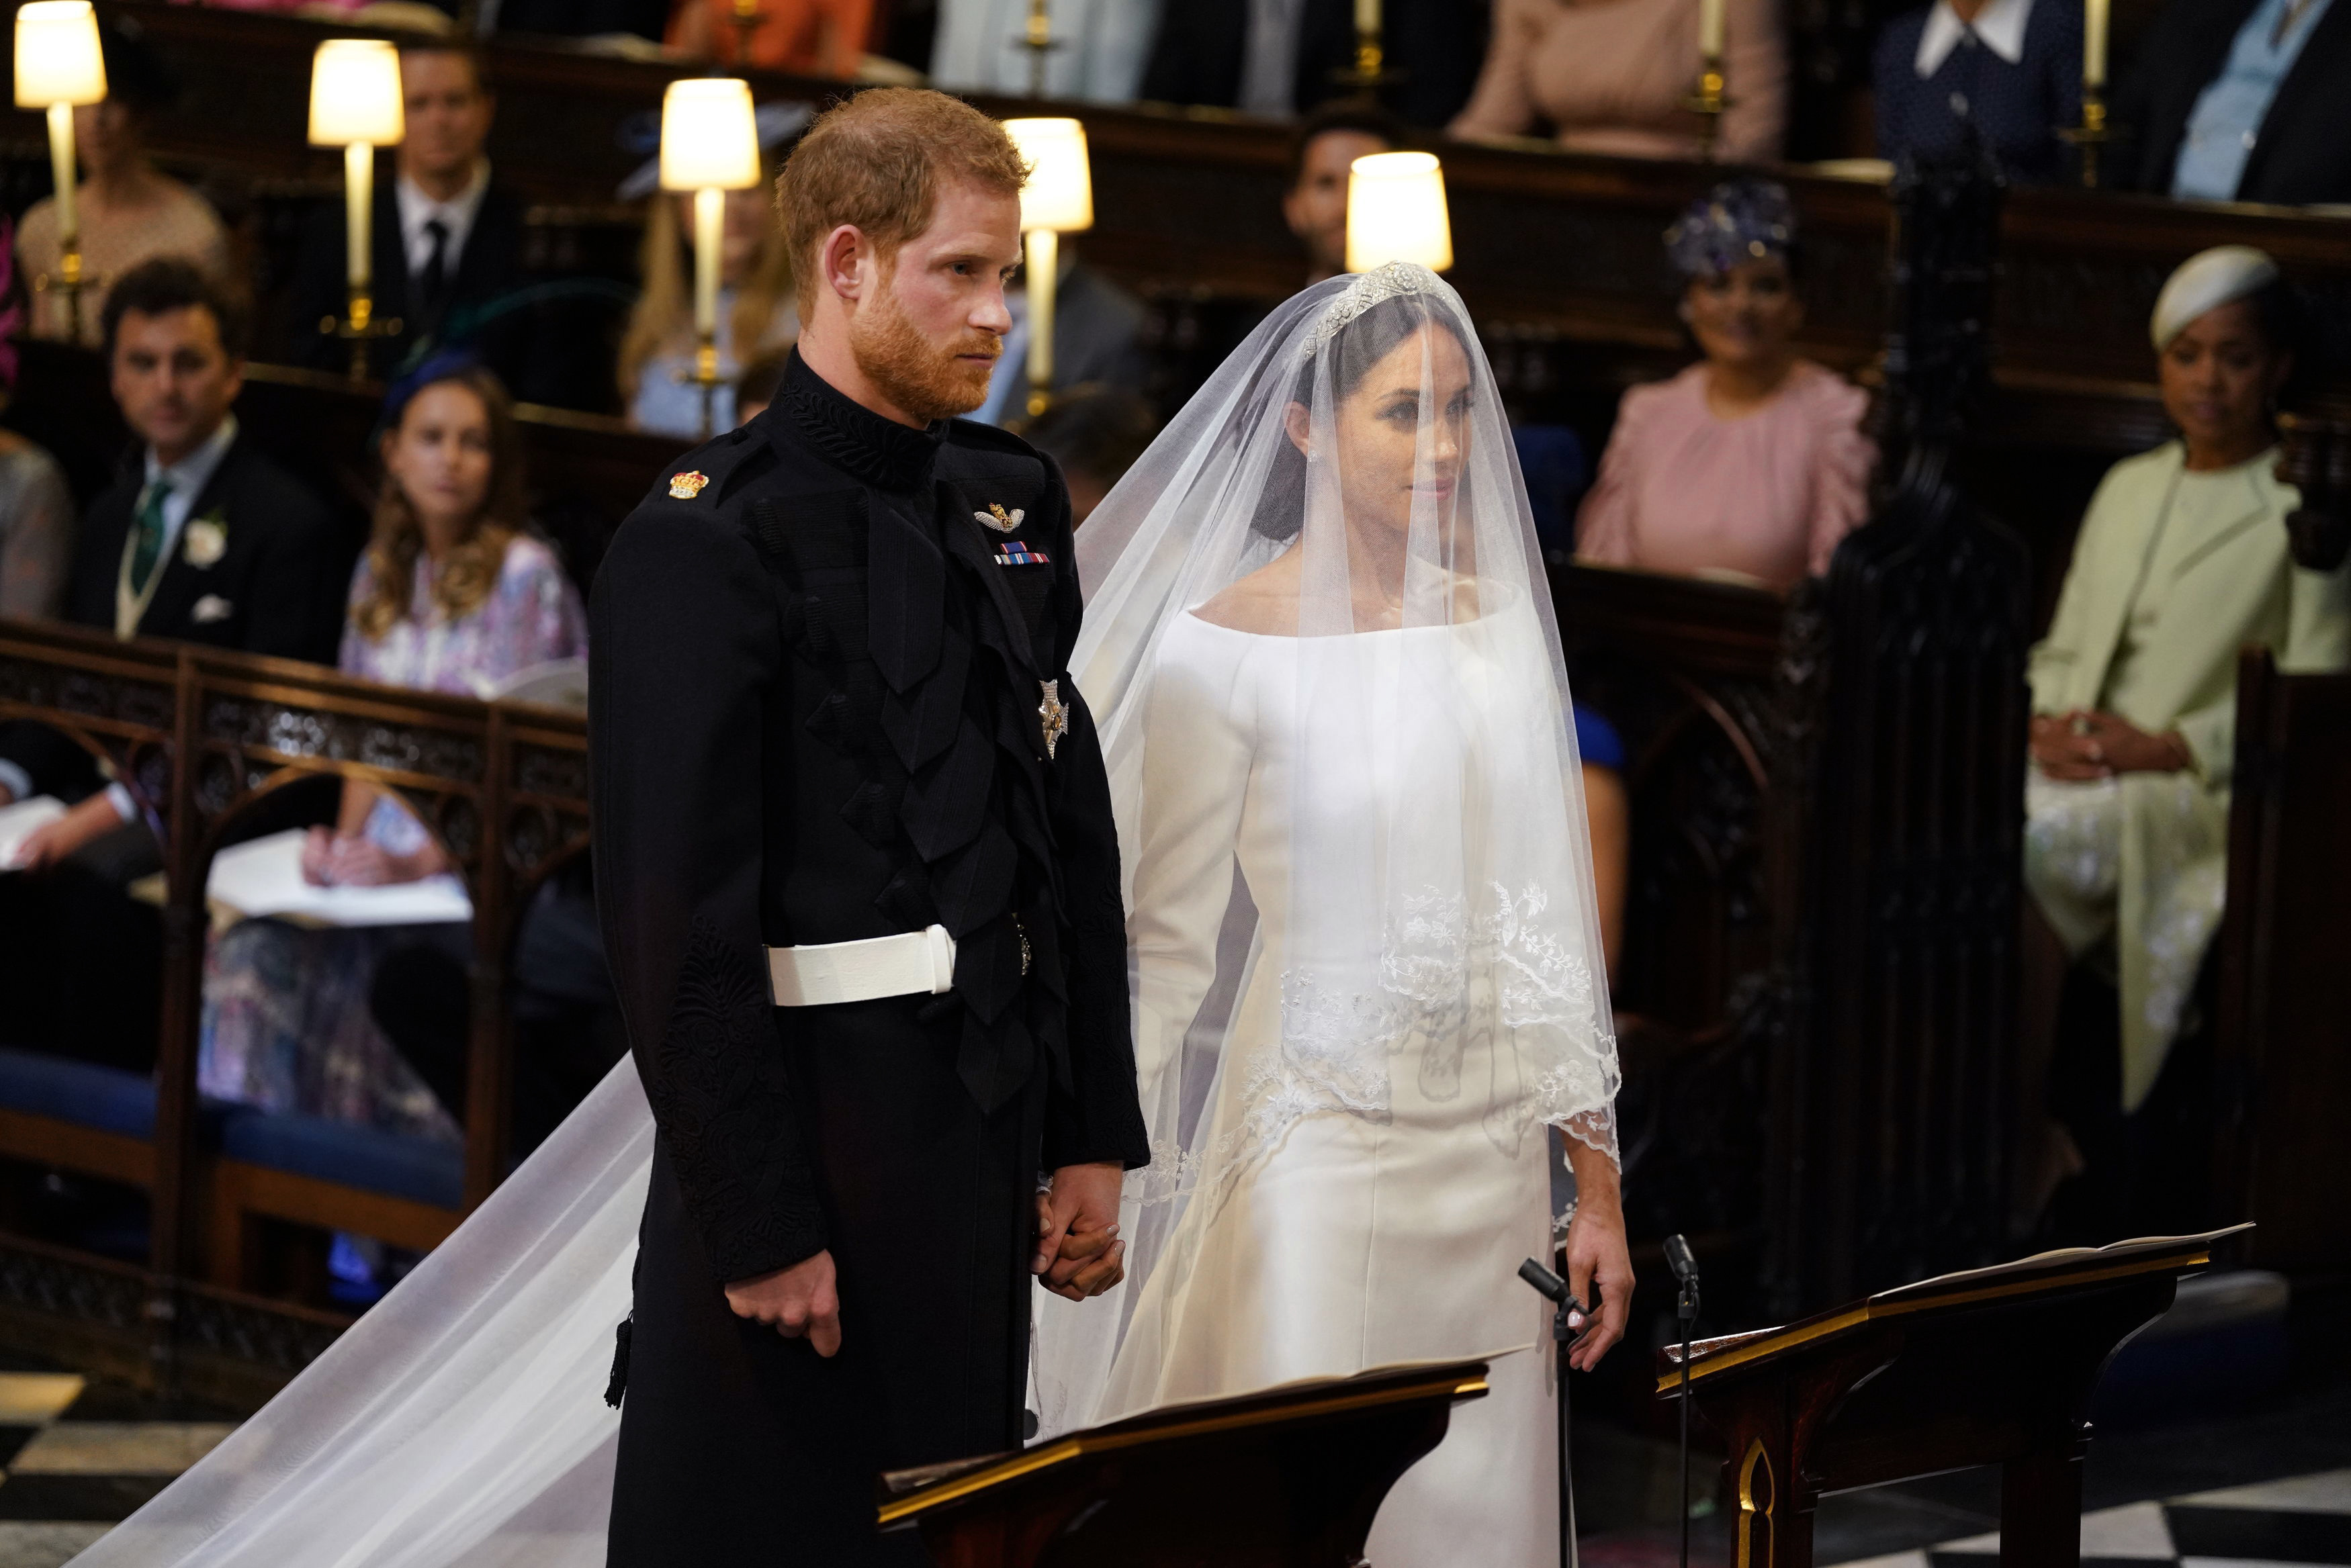 Meghan wears Stella McCartney dress to evening royal wedding ...